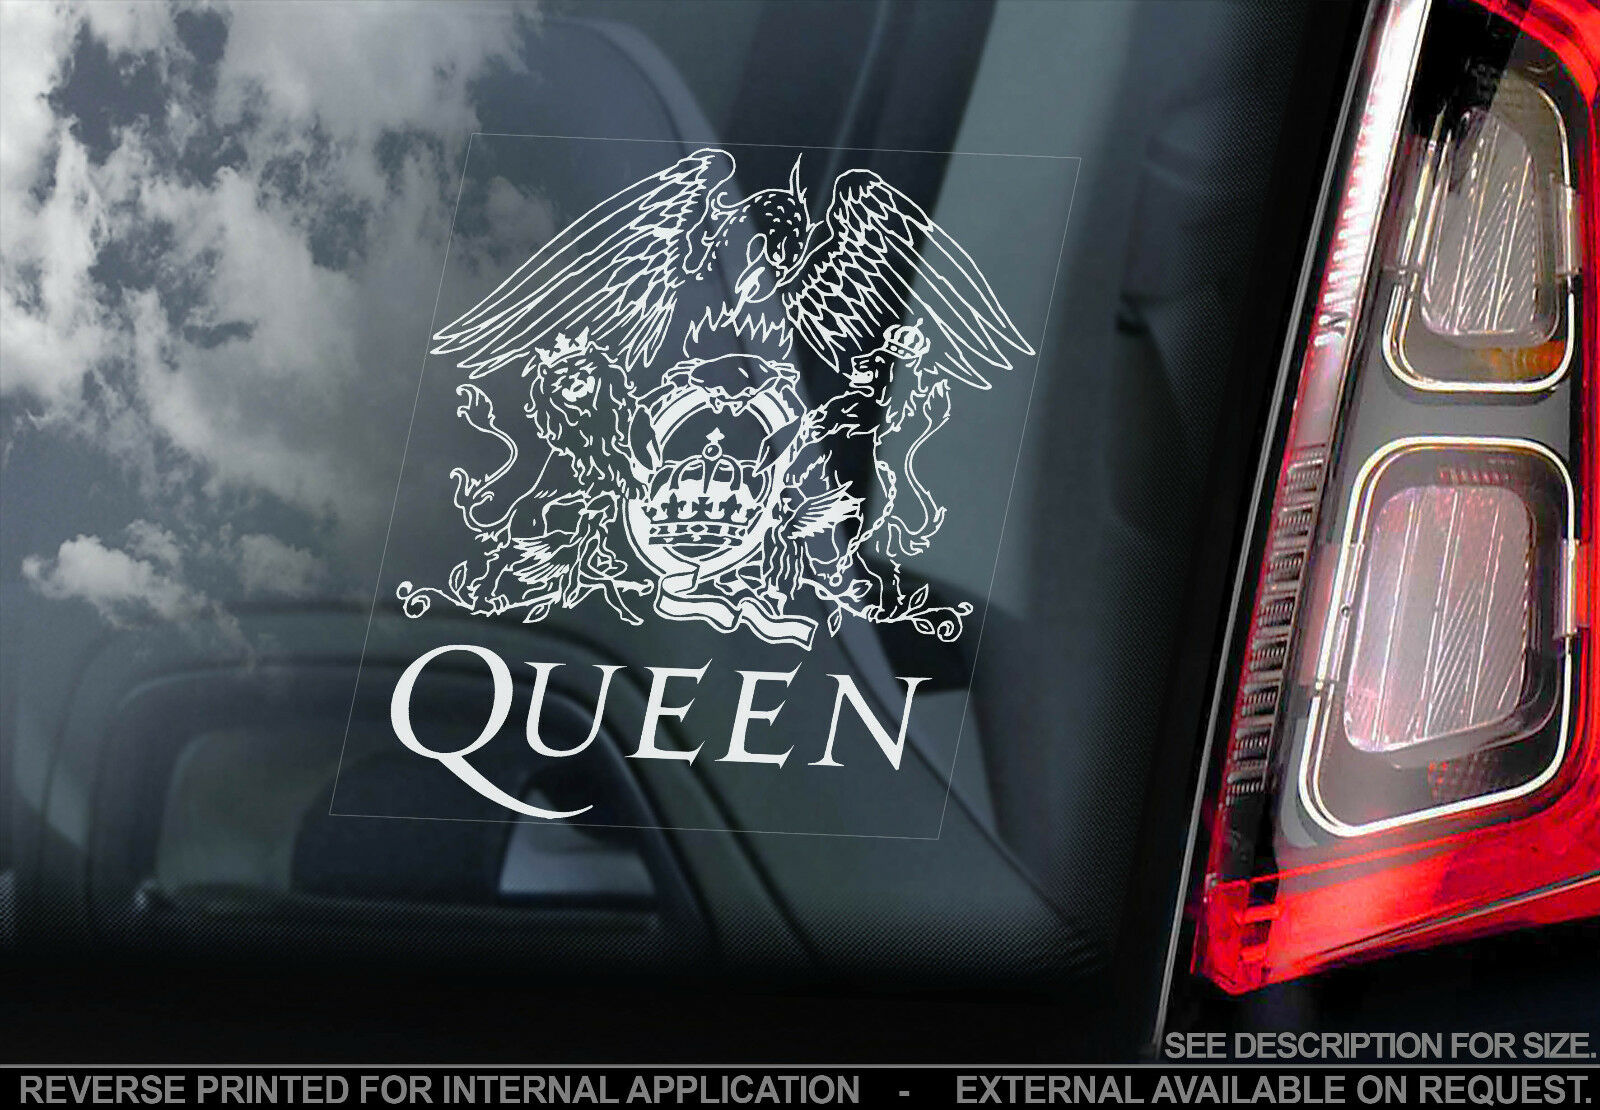 Details About Queen Car Window Sticker Freddie Mercury Rock Band Music Decal Sign V01